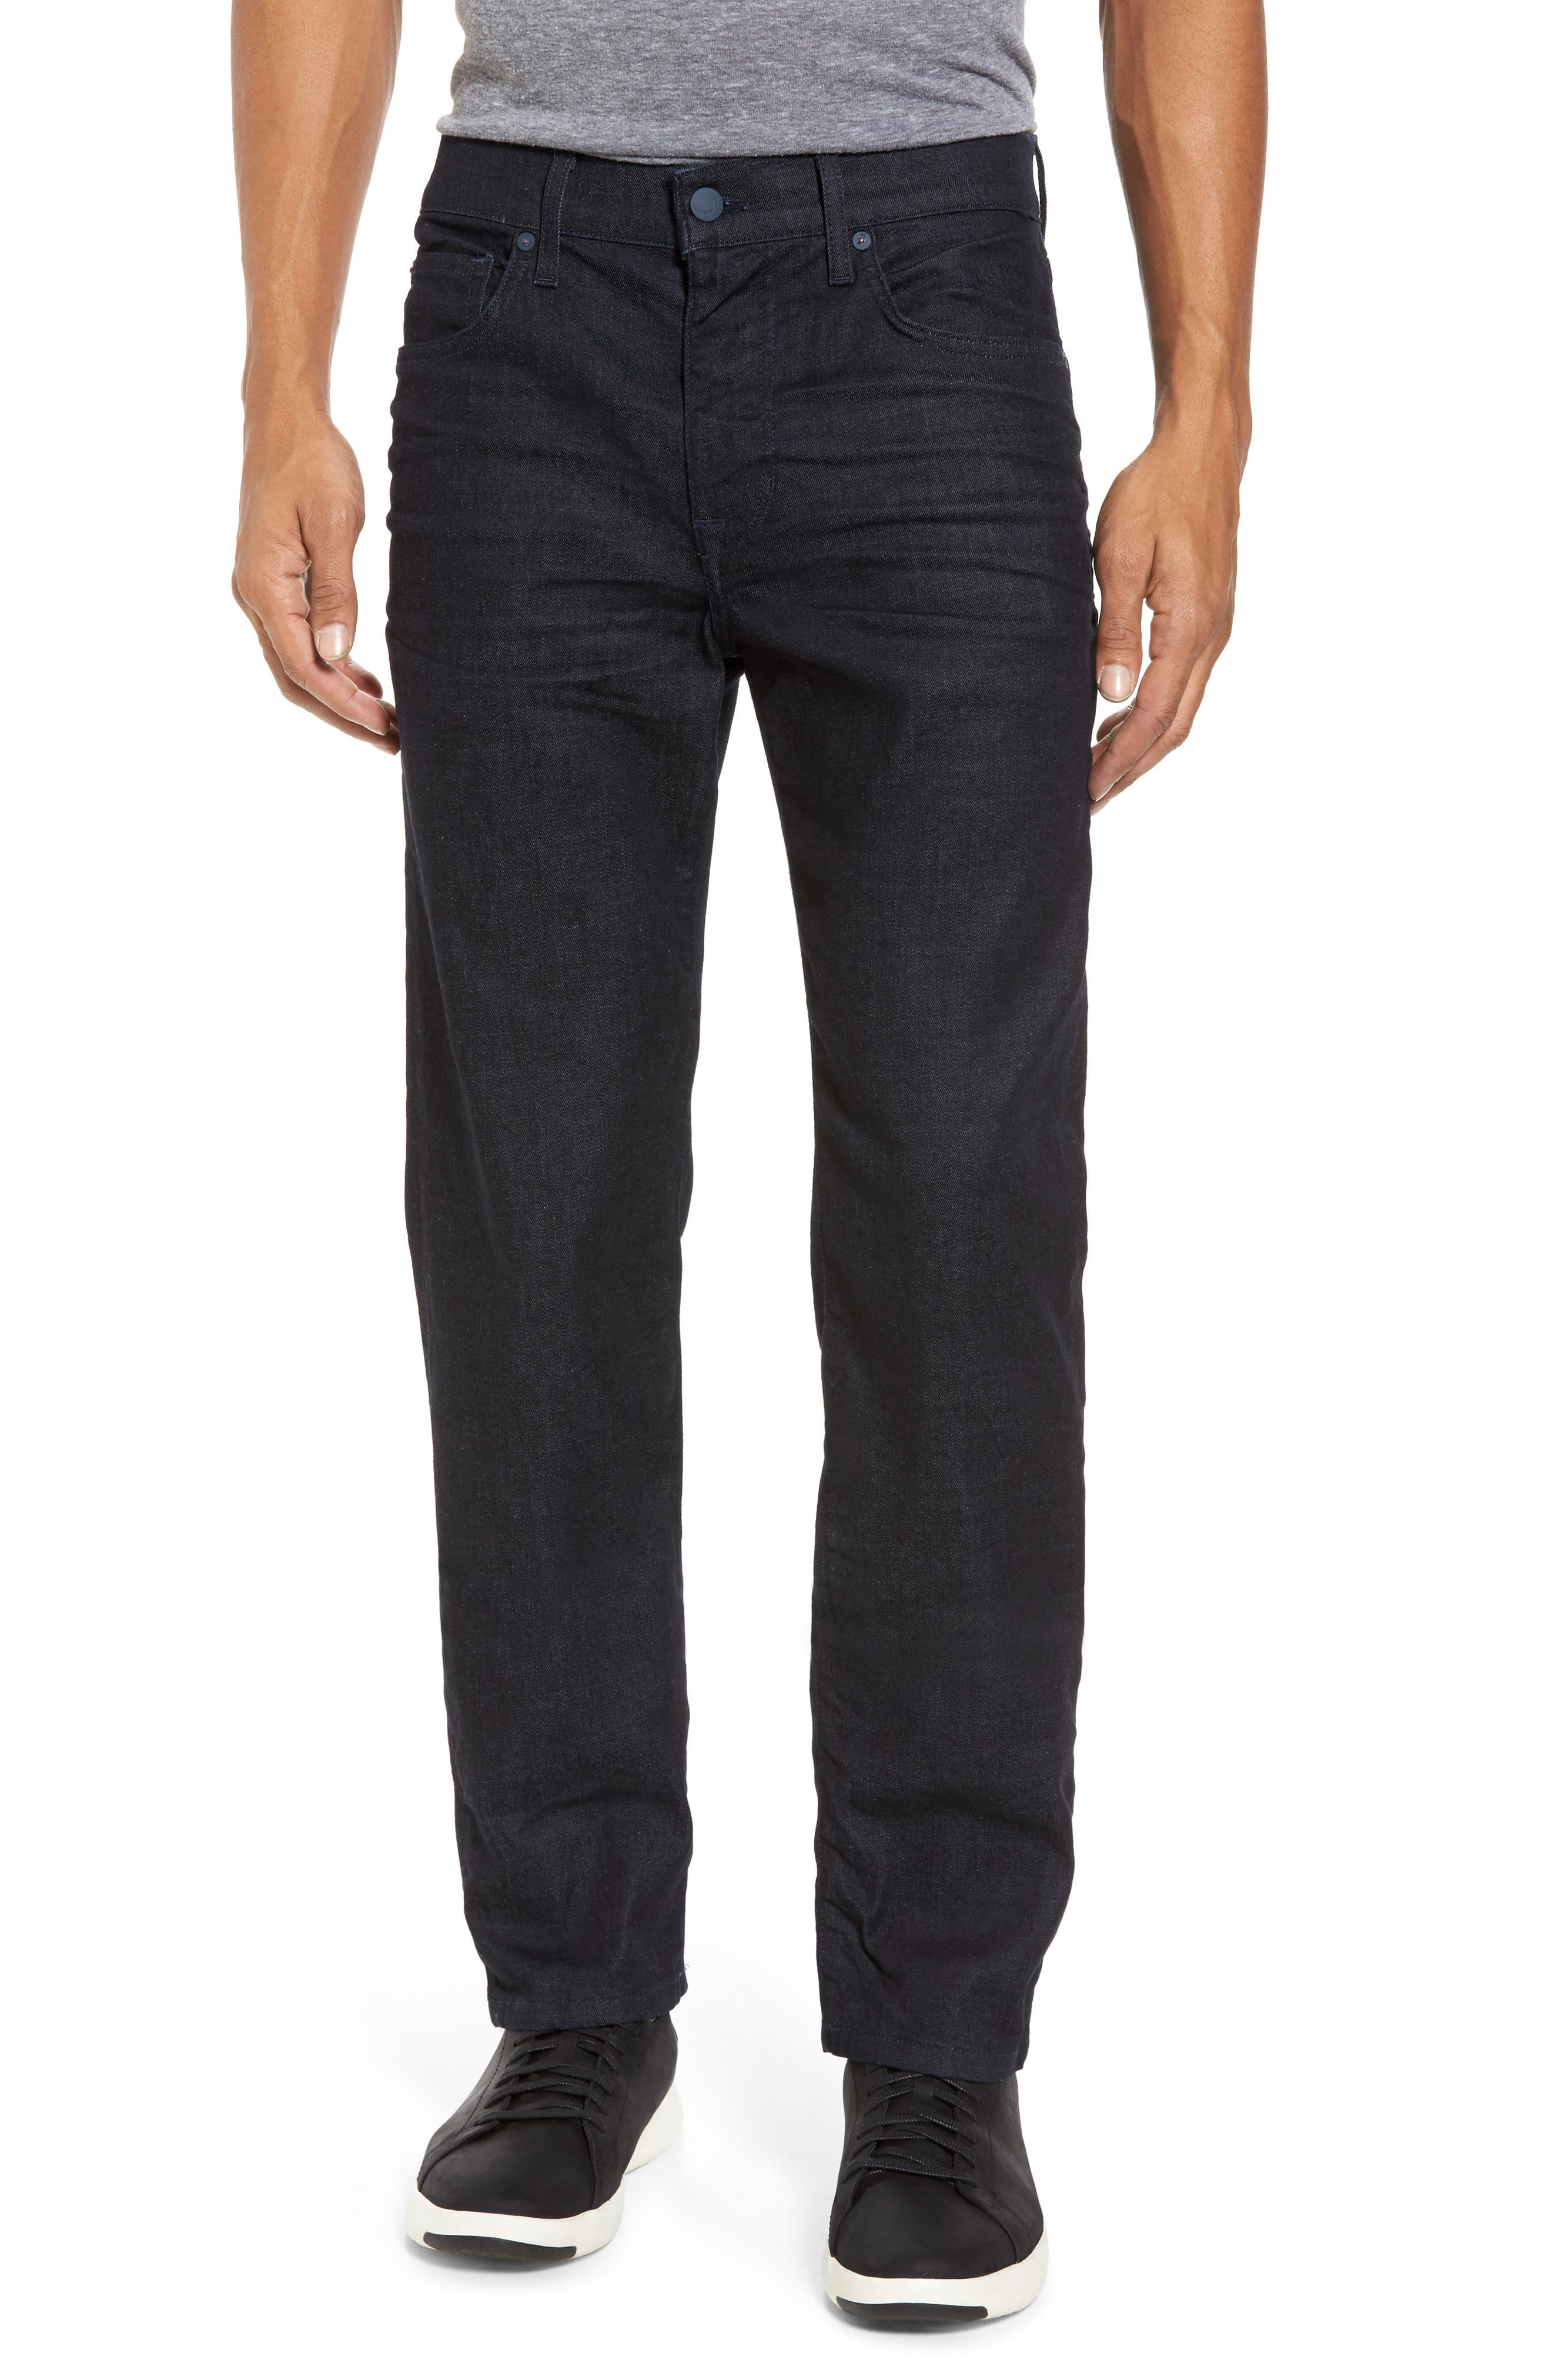 Brixton Slim Straight Fit Jeans,                         Main,                         color, Foster